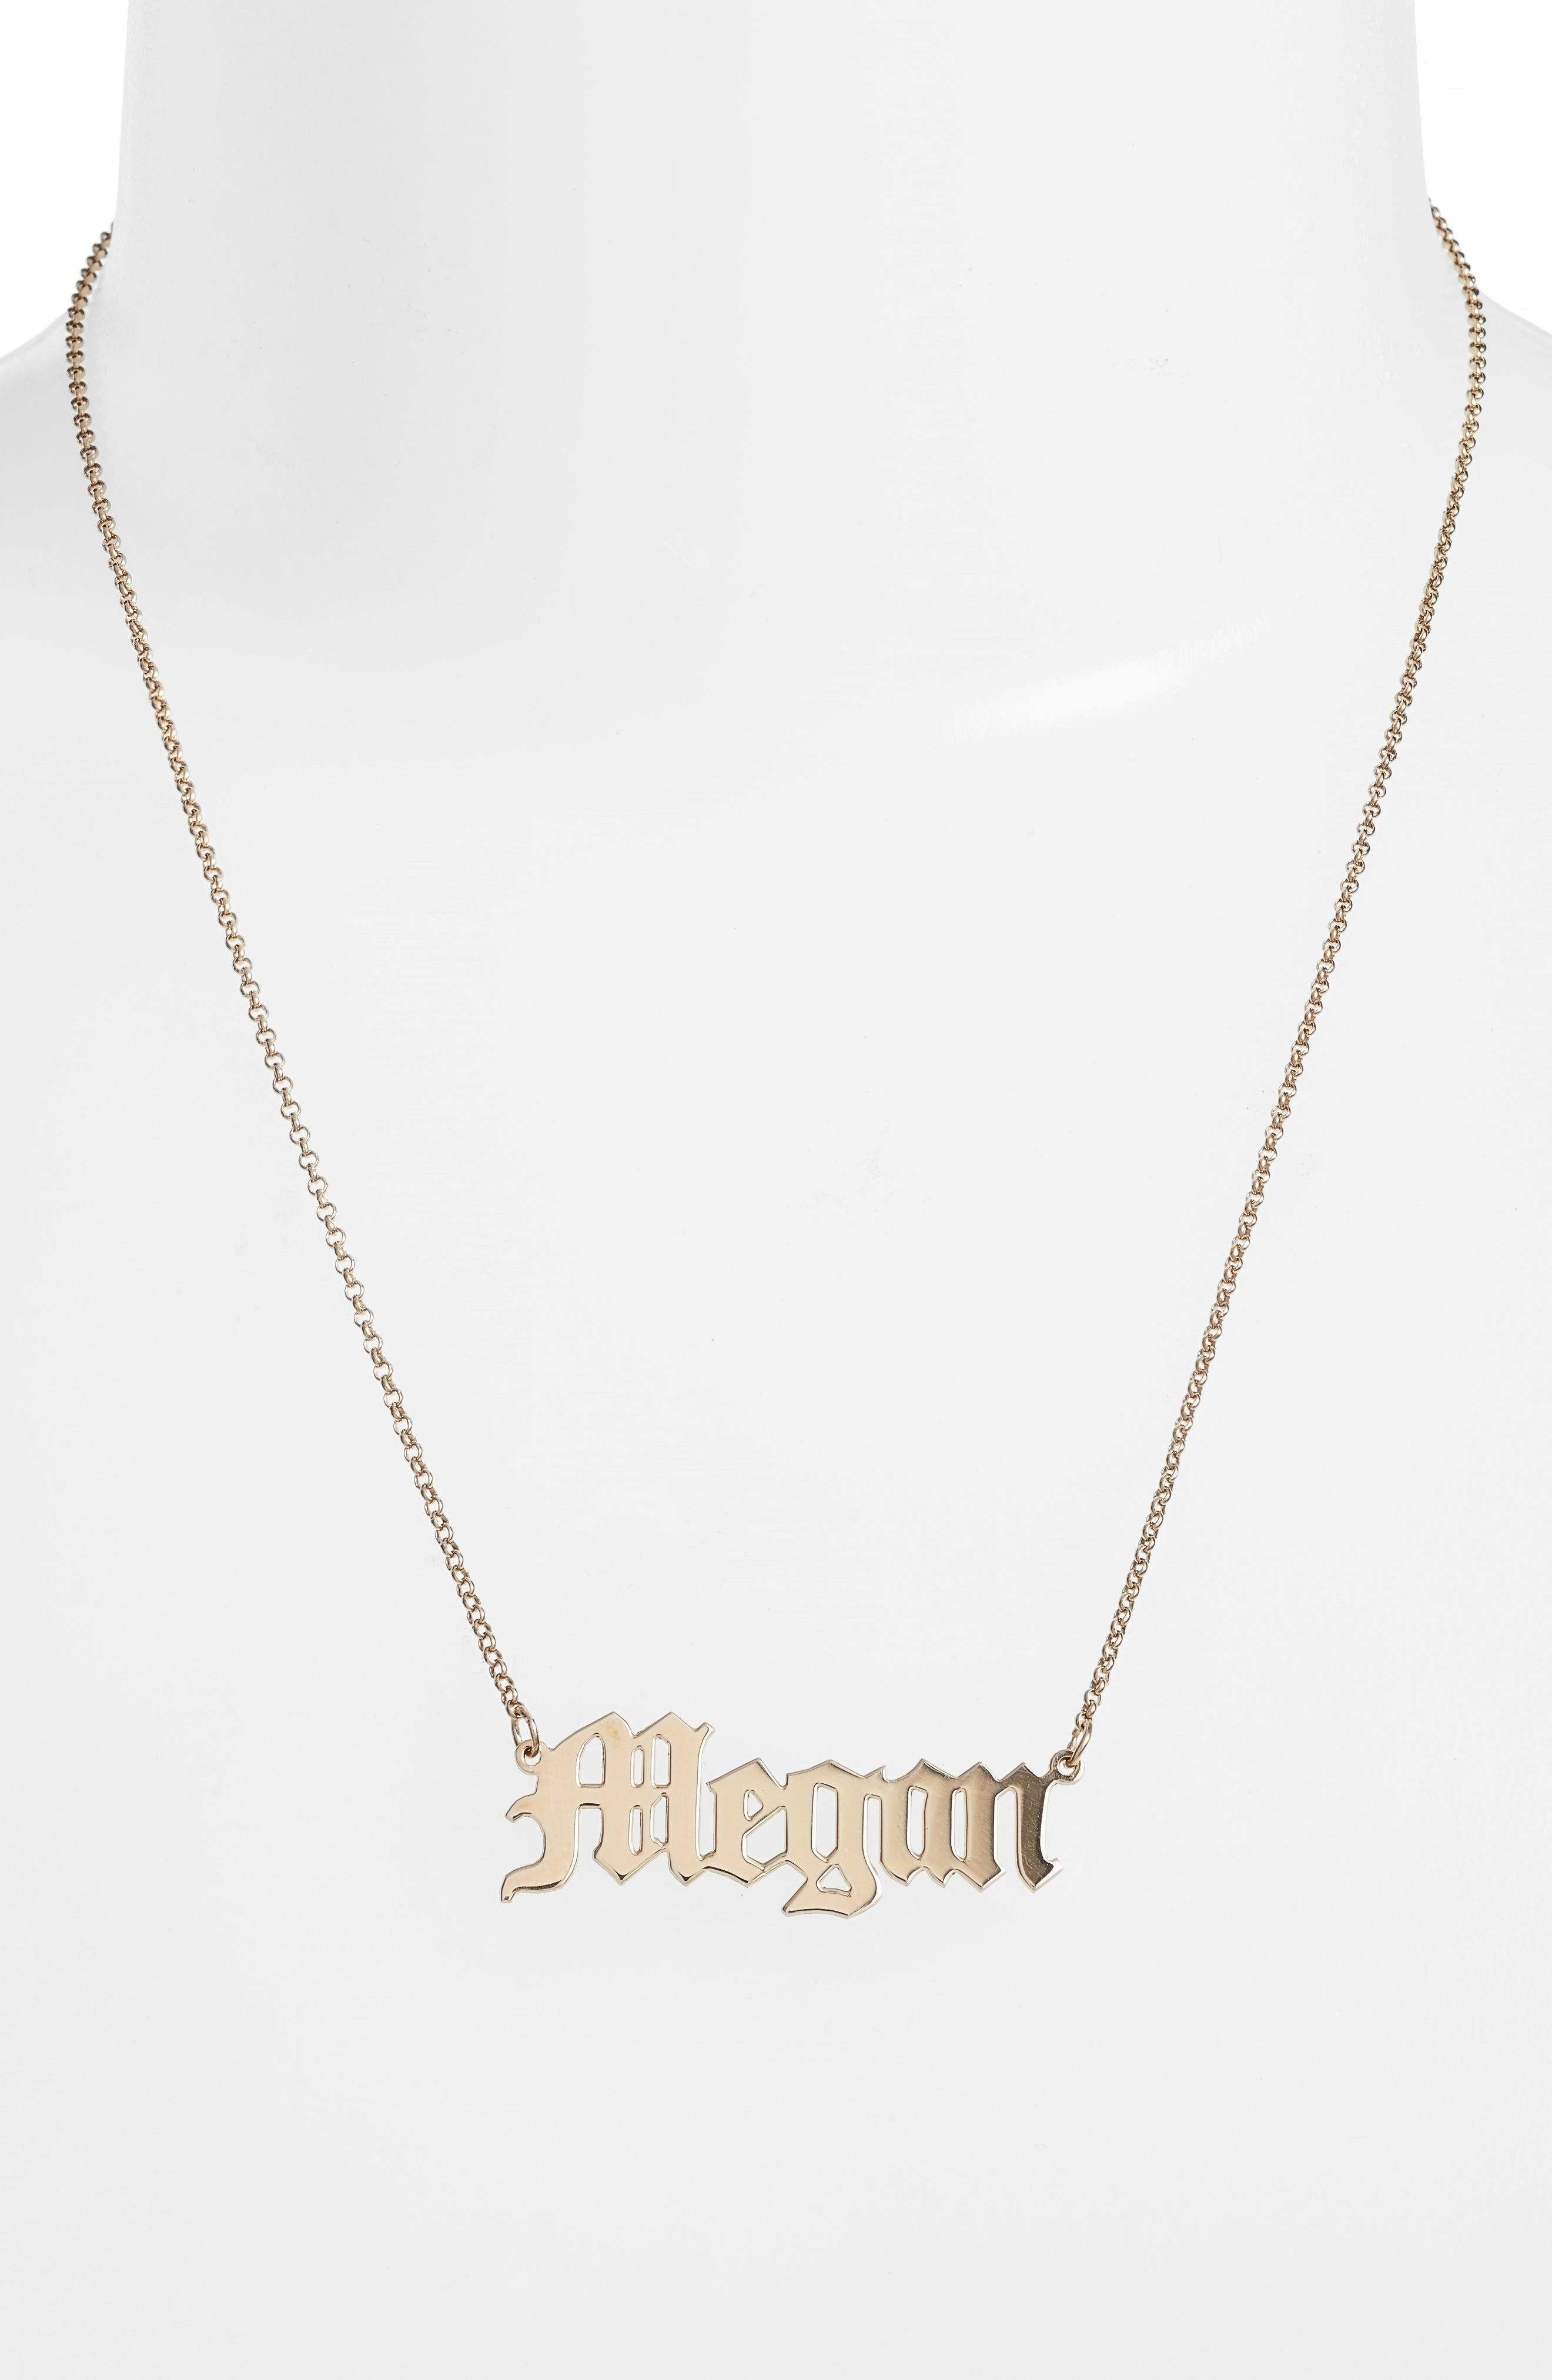 Personalized English Font Name Necklace,                             Alternate thumbnail 2, color,                             Gold